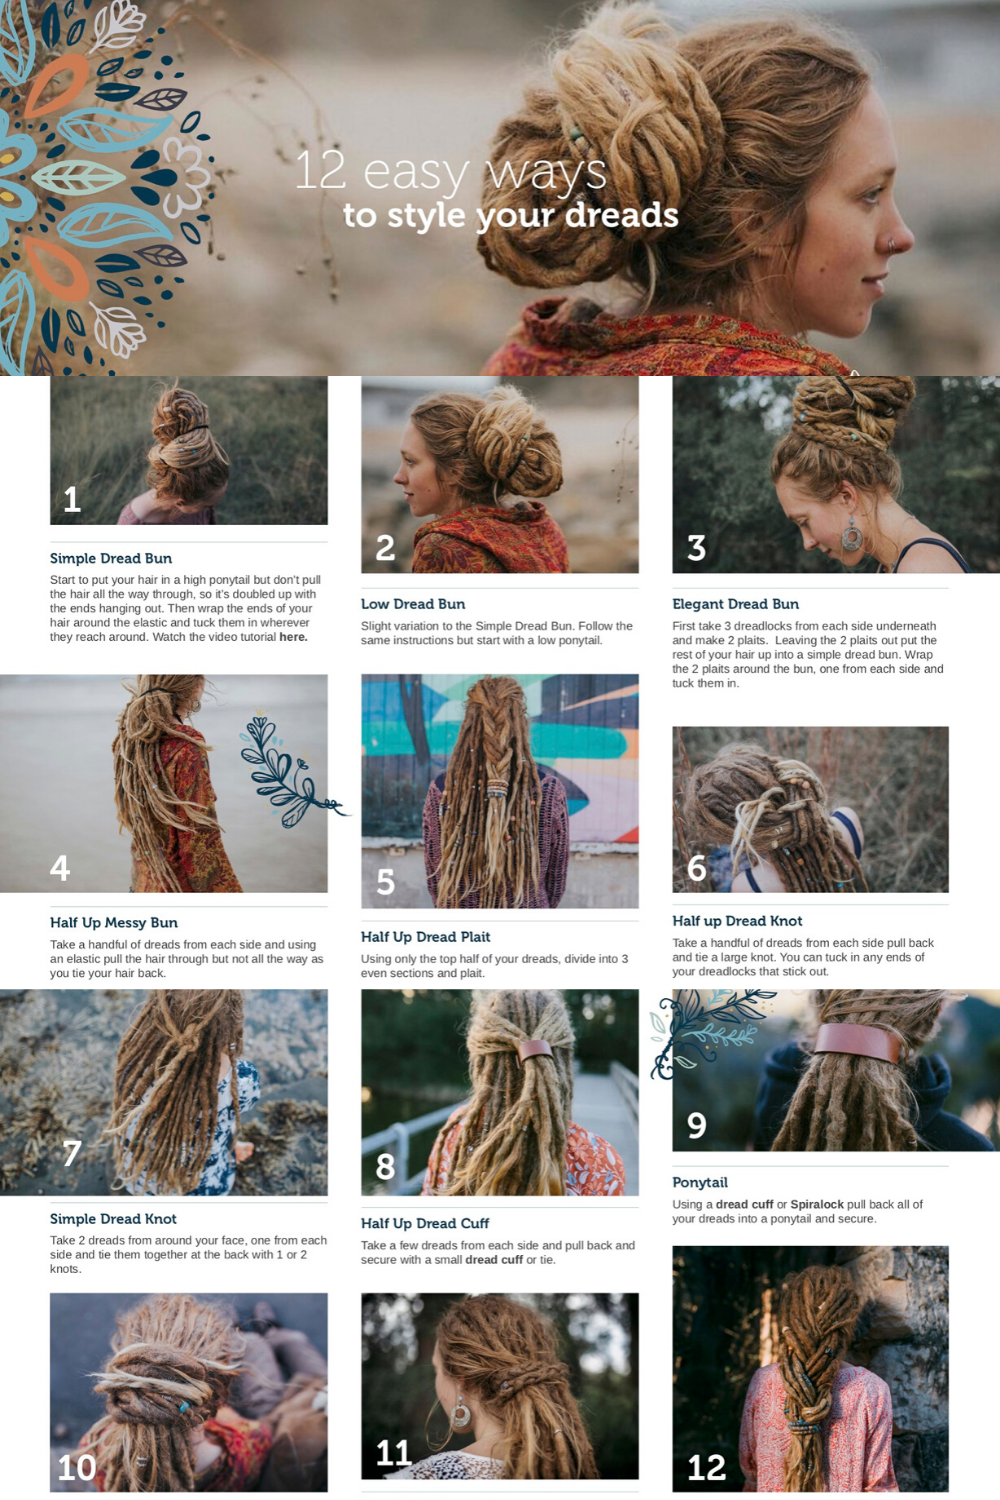 12 Easy Ways To Style Your Dreads Dreadhairstyles Free Pdf Download Of 12 Simple Dreadlock Hairstyl Dread Hairstyles Dreadlock Accessories Hair Styles